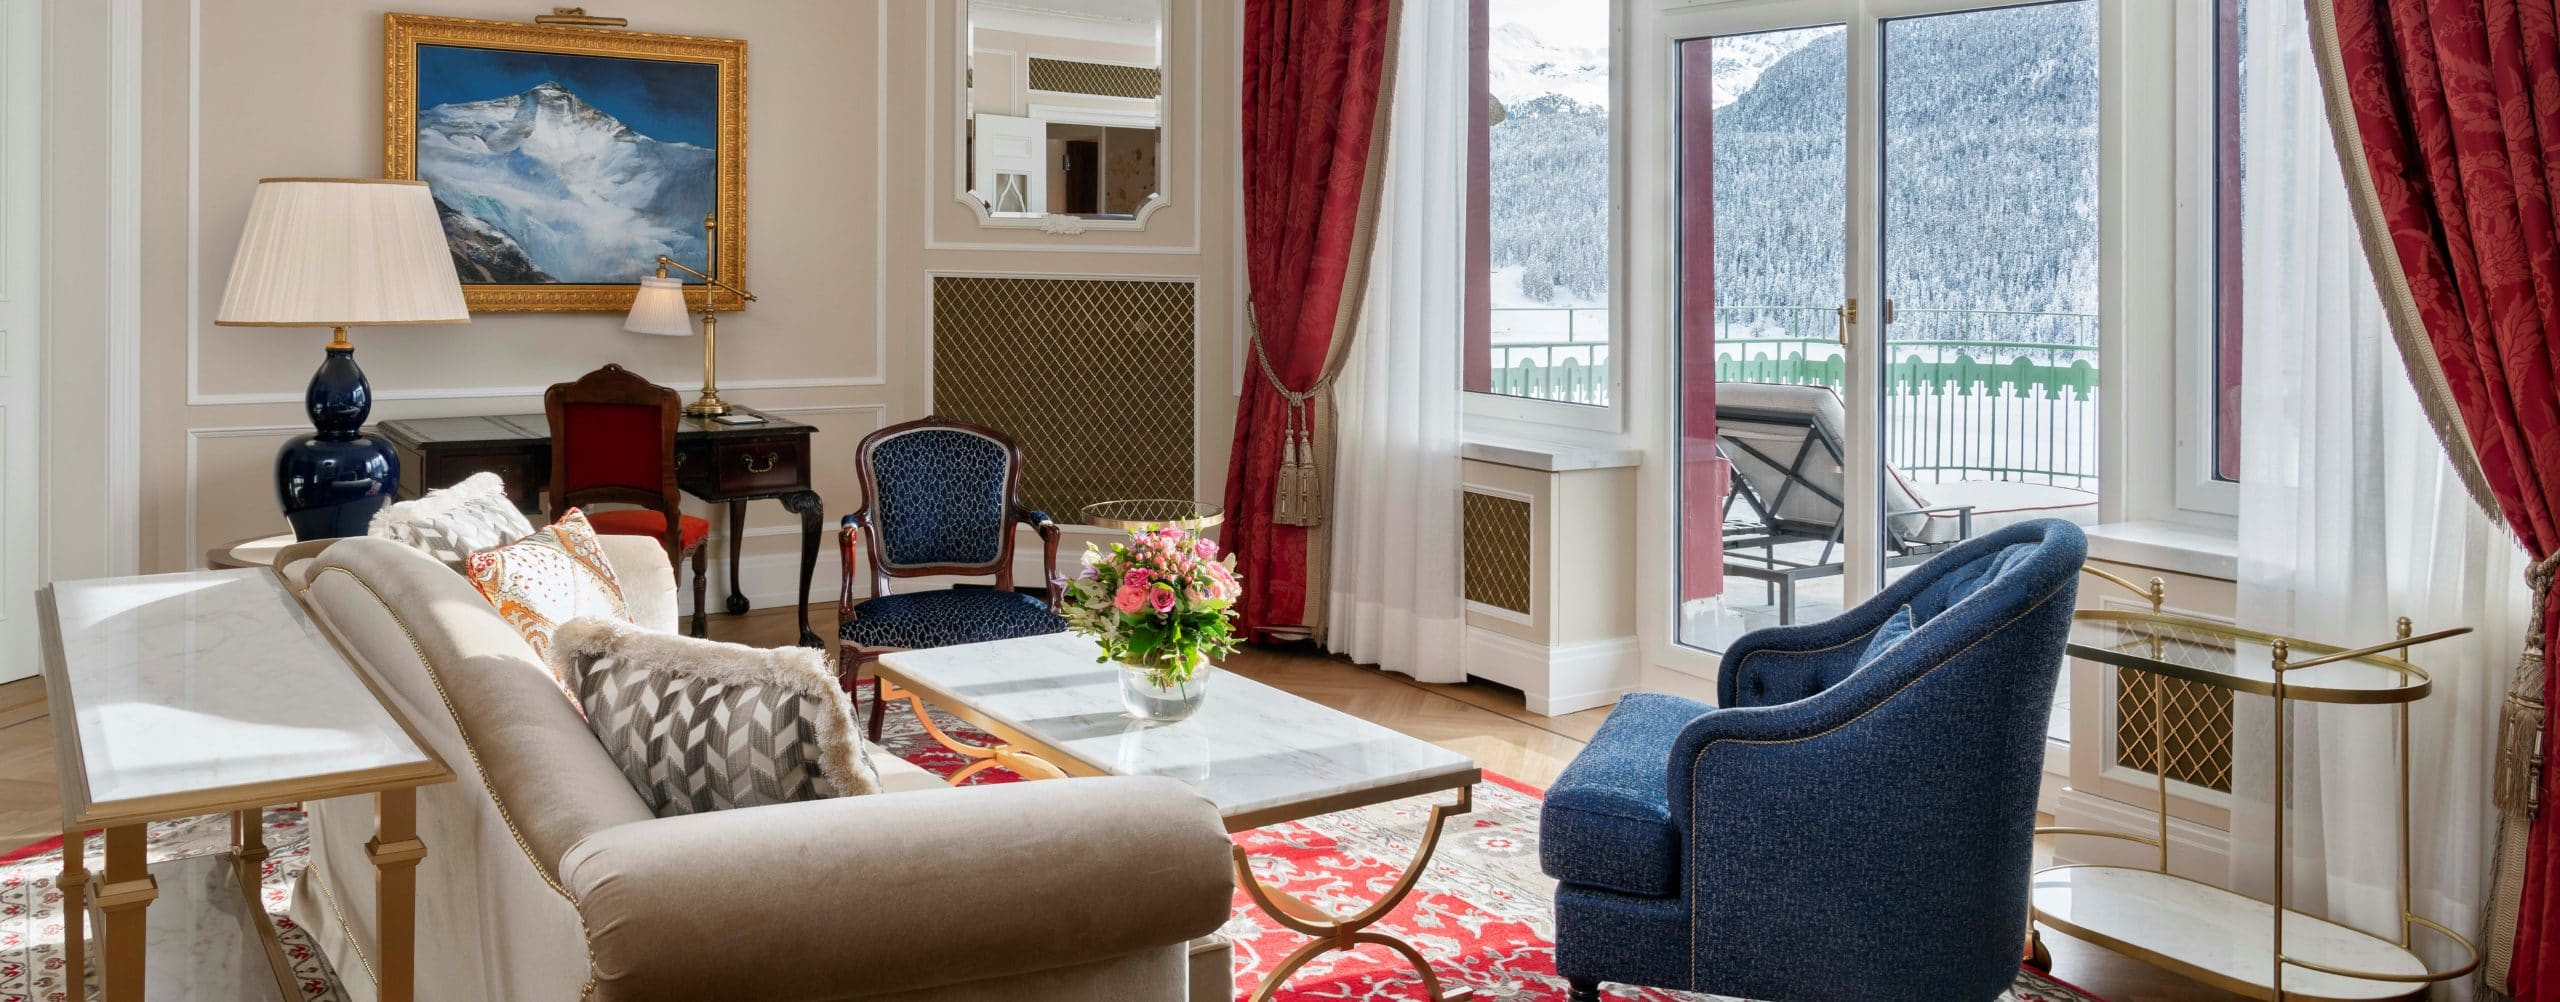 Two-Bedroom Suite St. Moritz